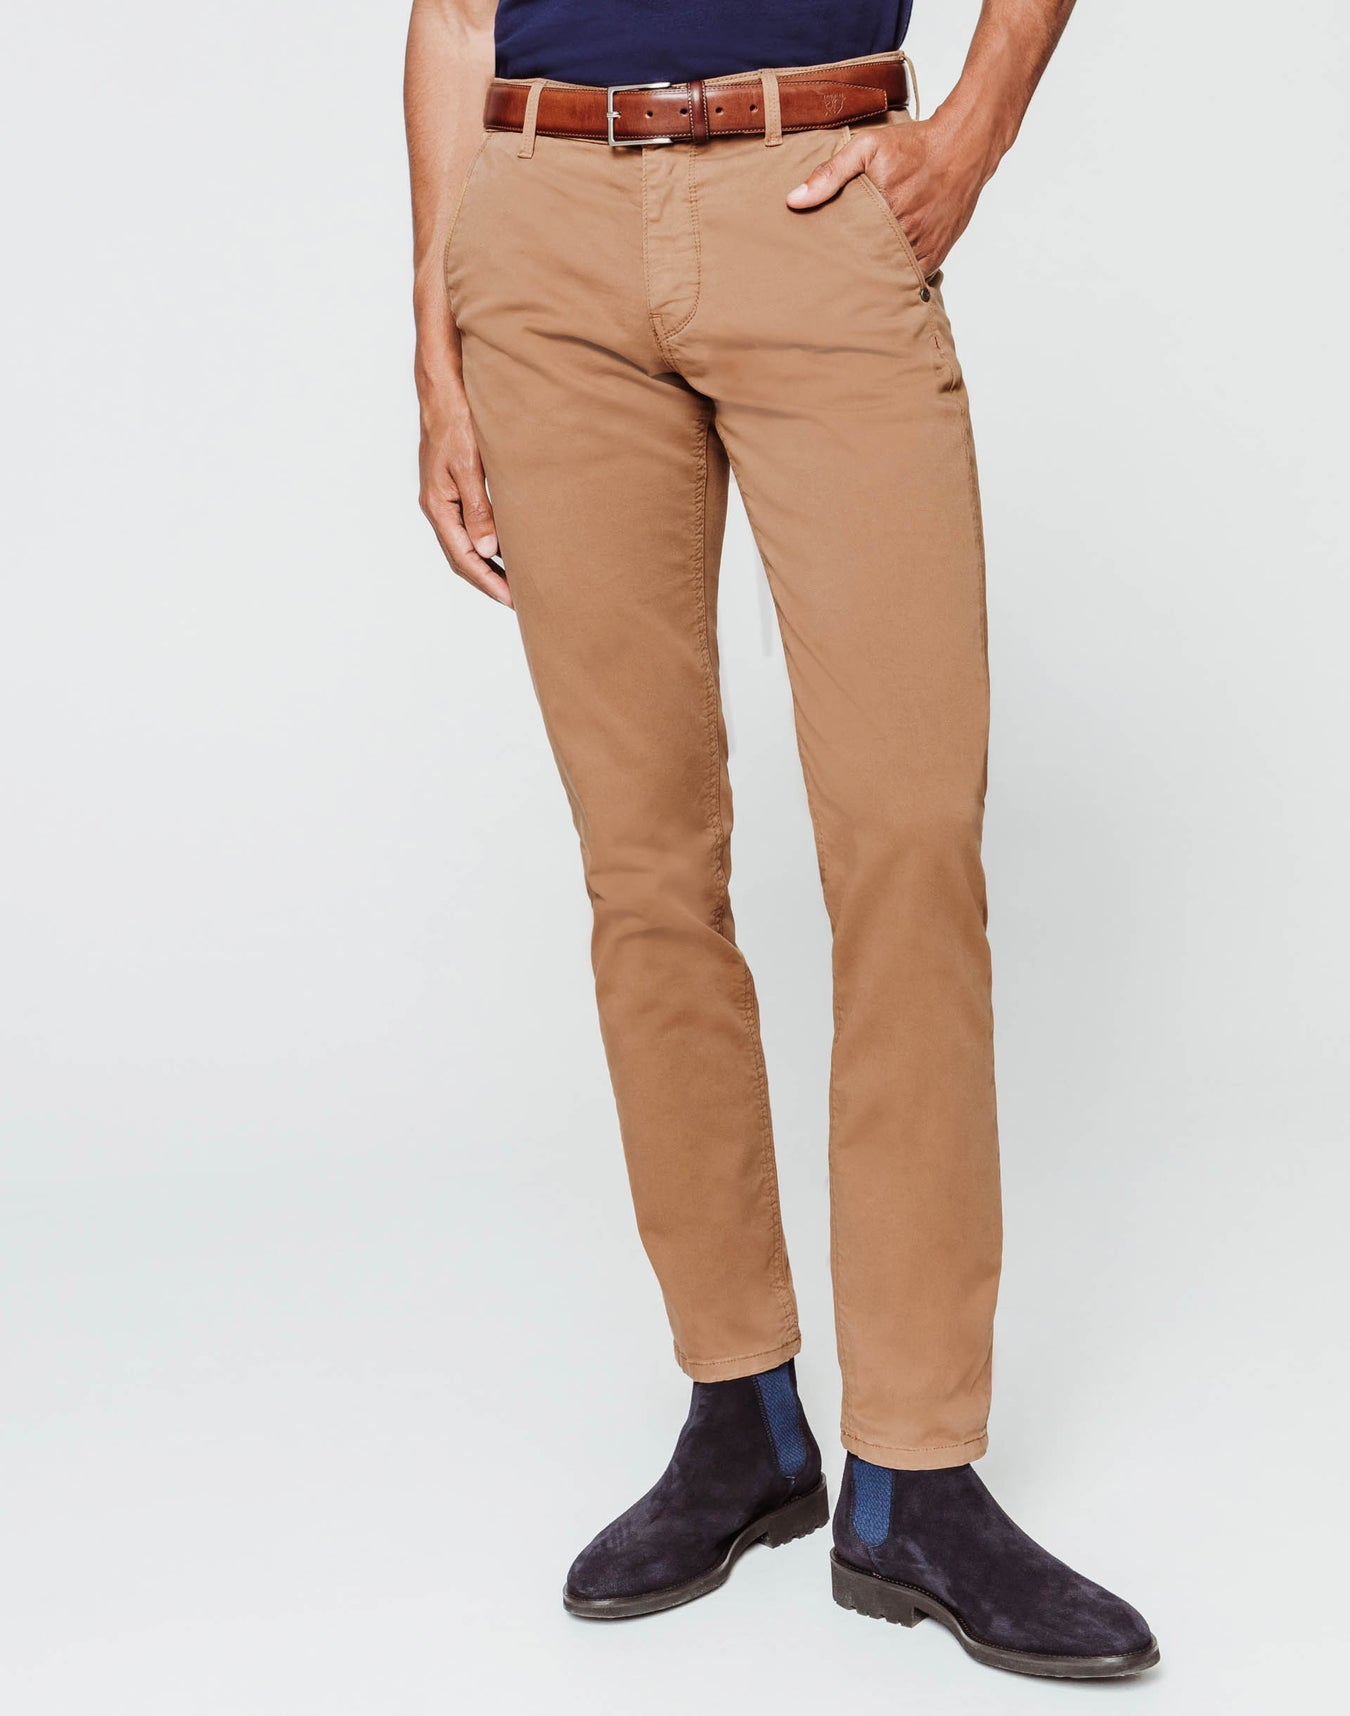 Chino fashion camel